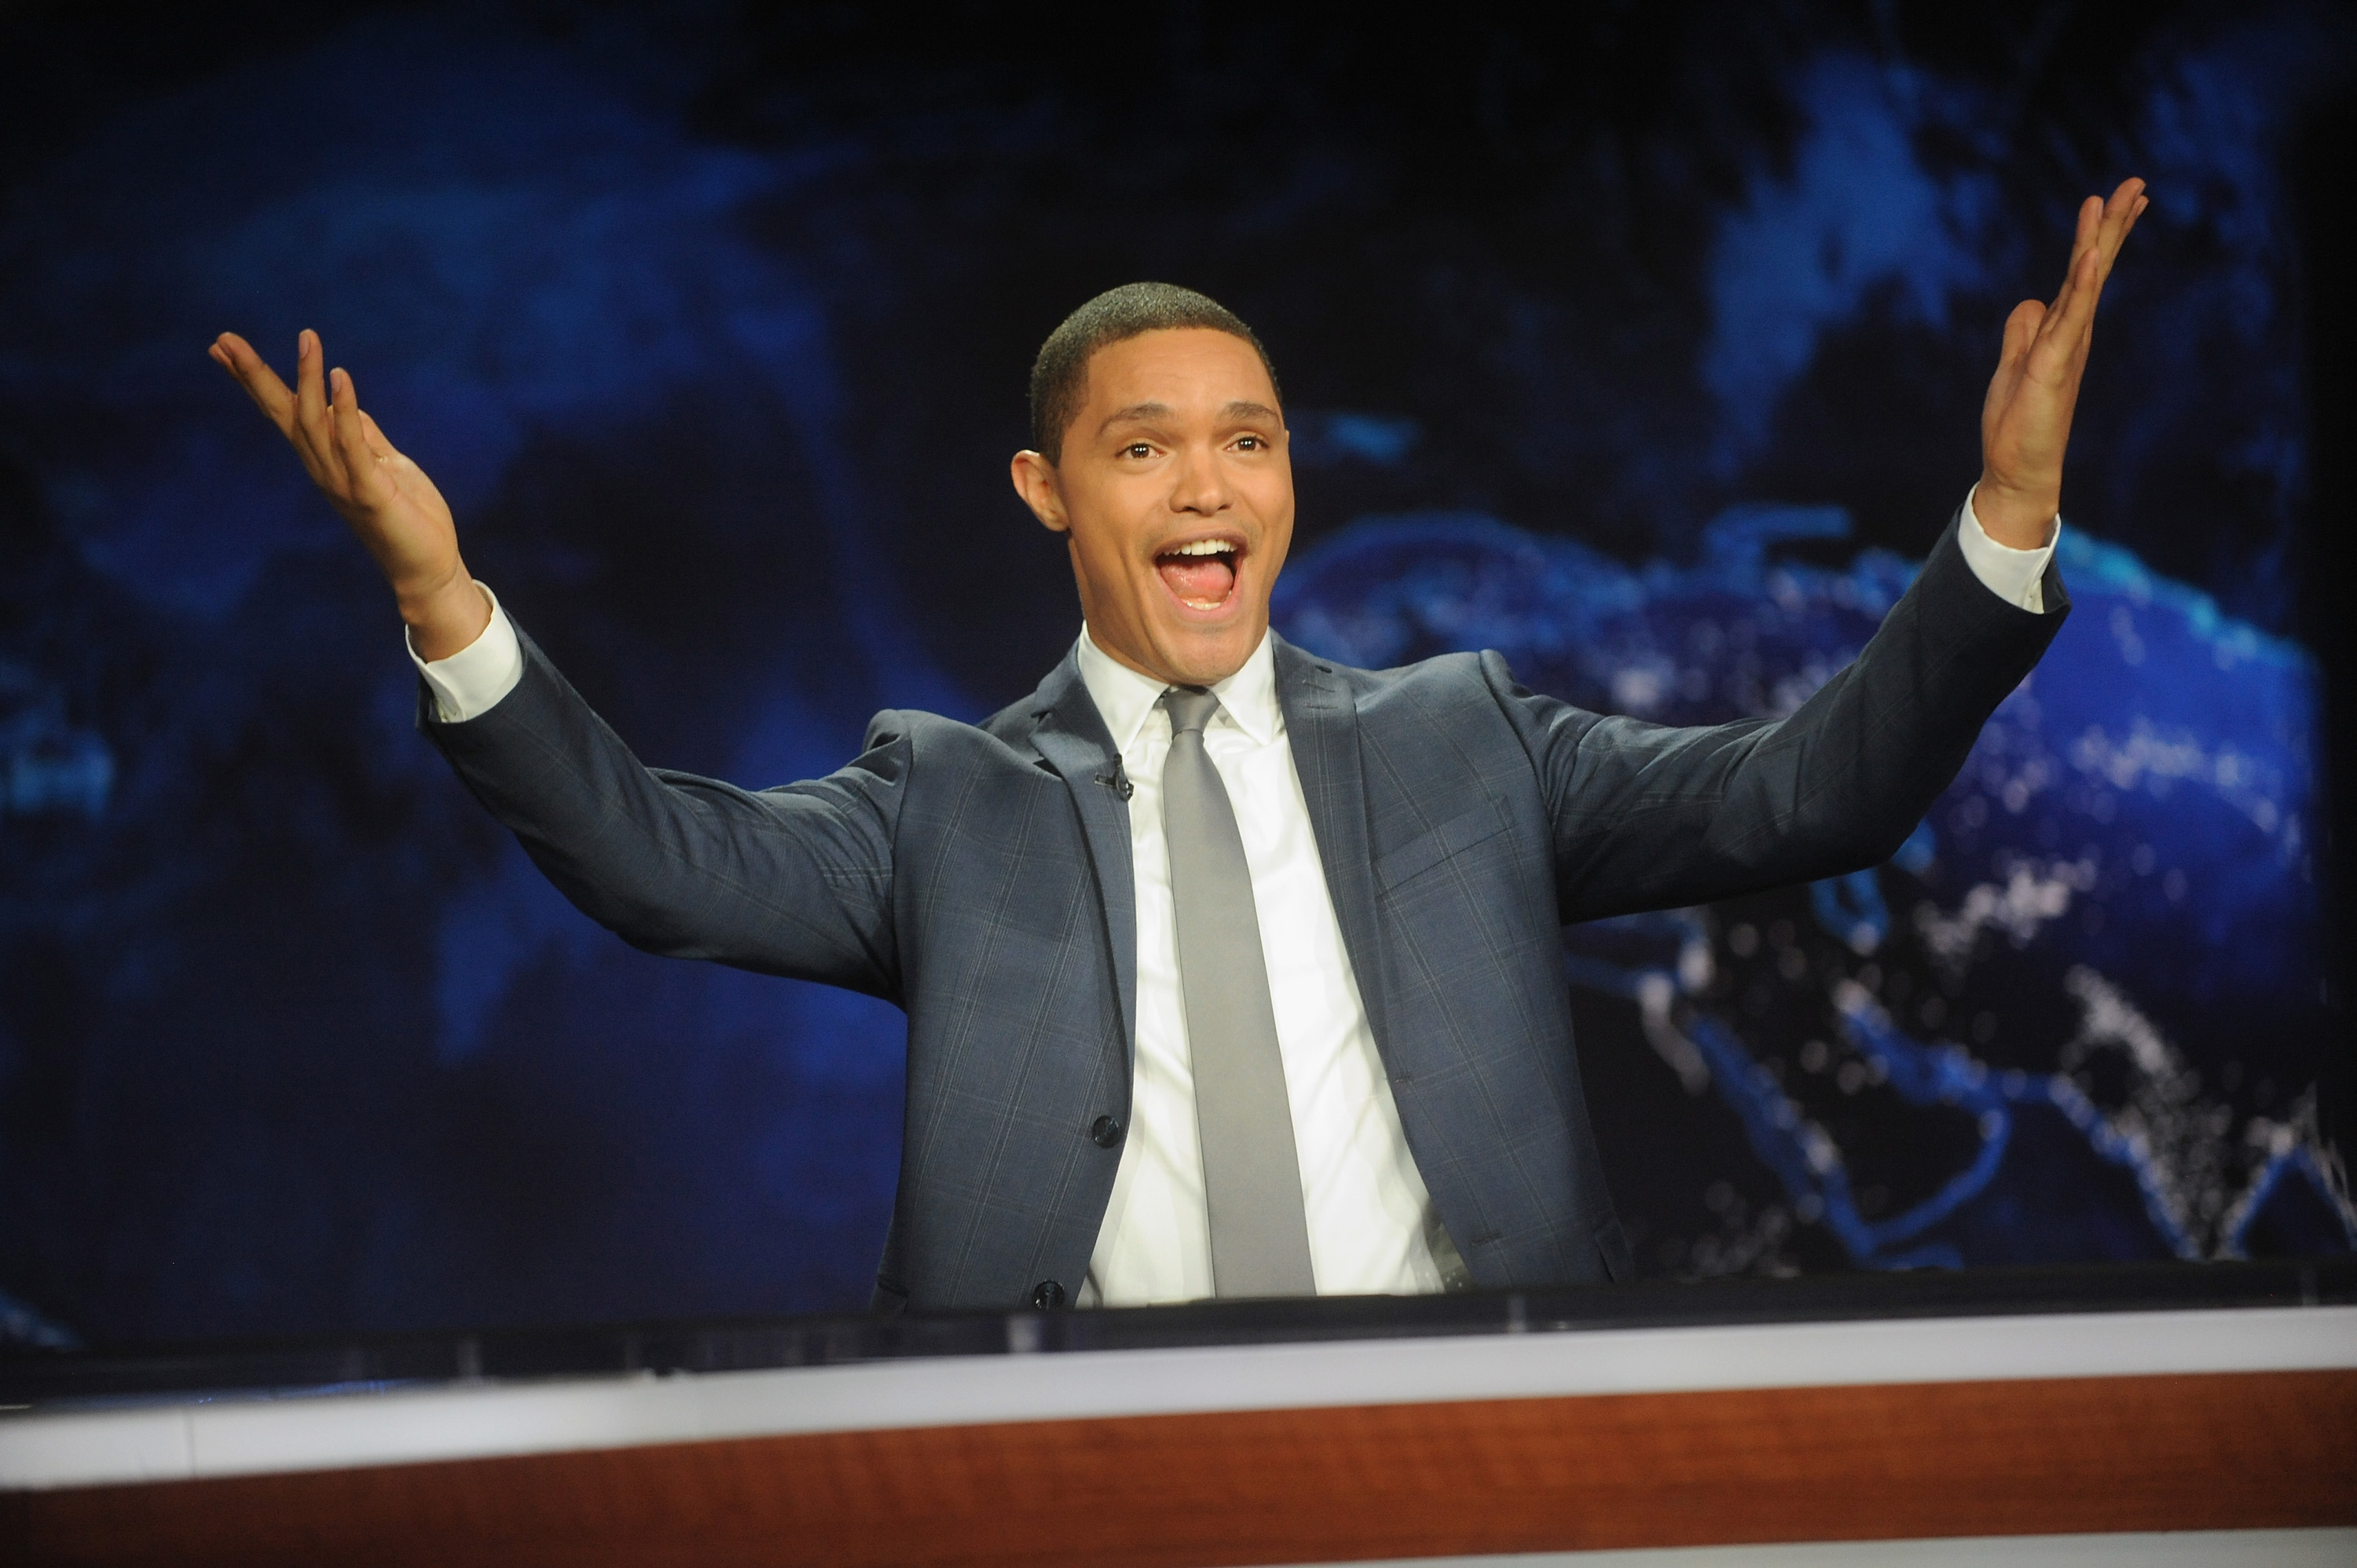 Trevor Noah hosts the  The Daily Show with Trevor Noah  Premiere at The Daily Show with Trevor Noah Studio in New York City, on Sept. 28, 2015